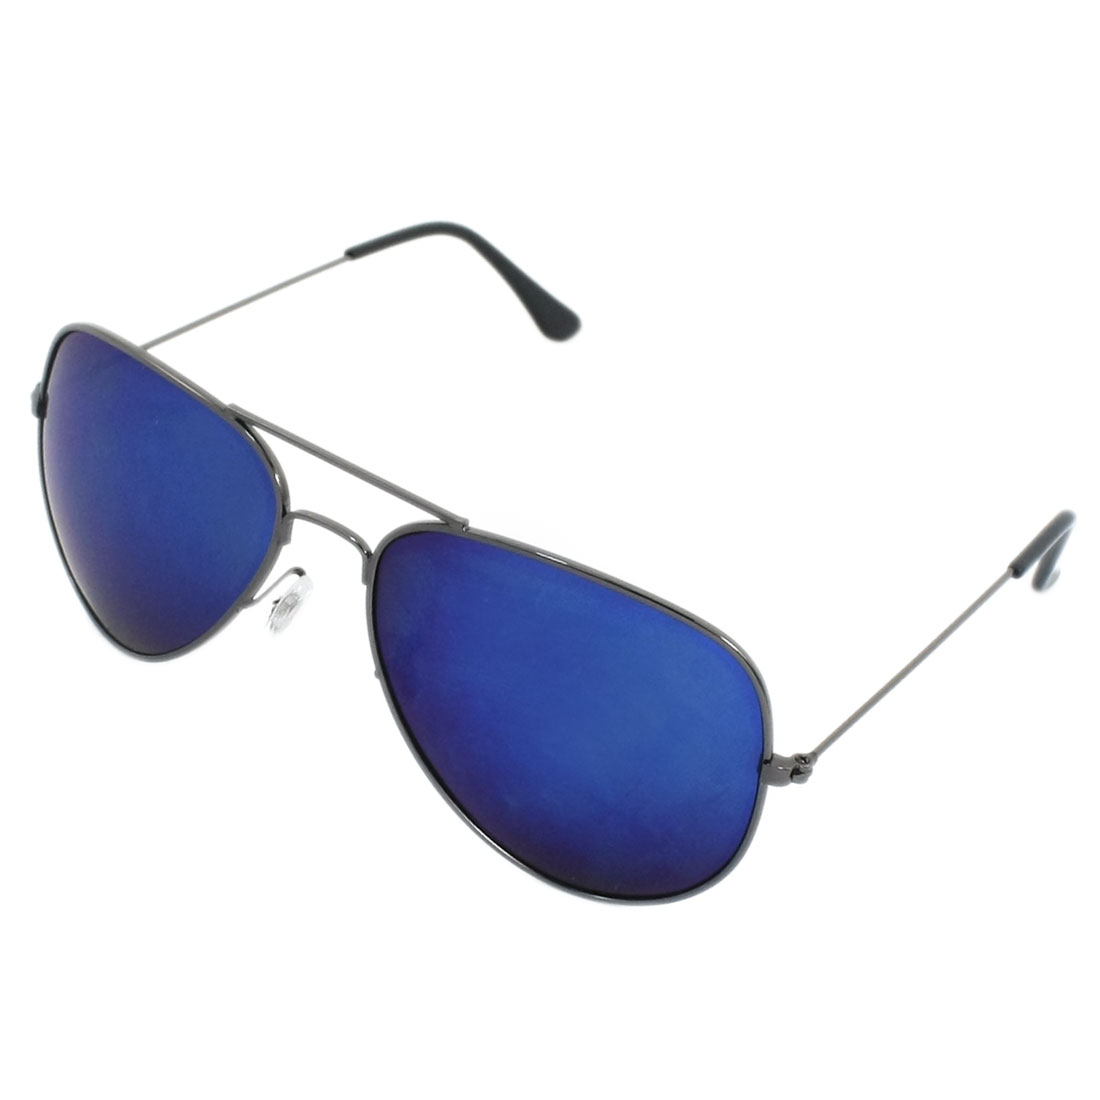 Blue Lens Metal Full Rim Leisure Polarized Sunglasses for Man